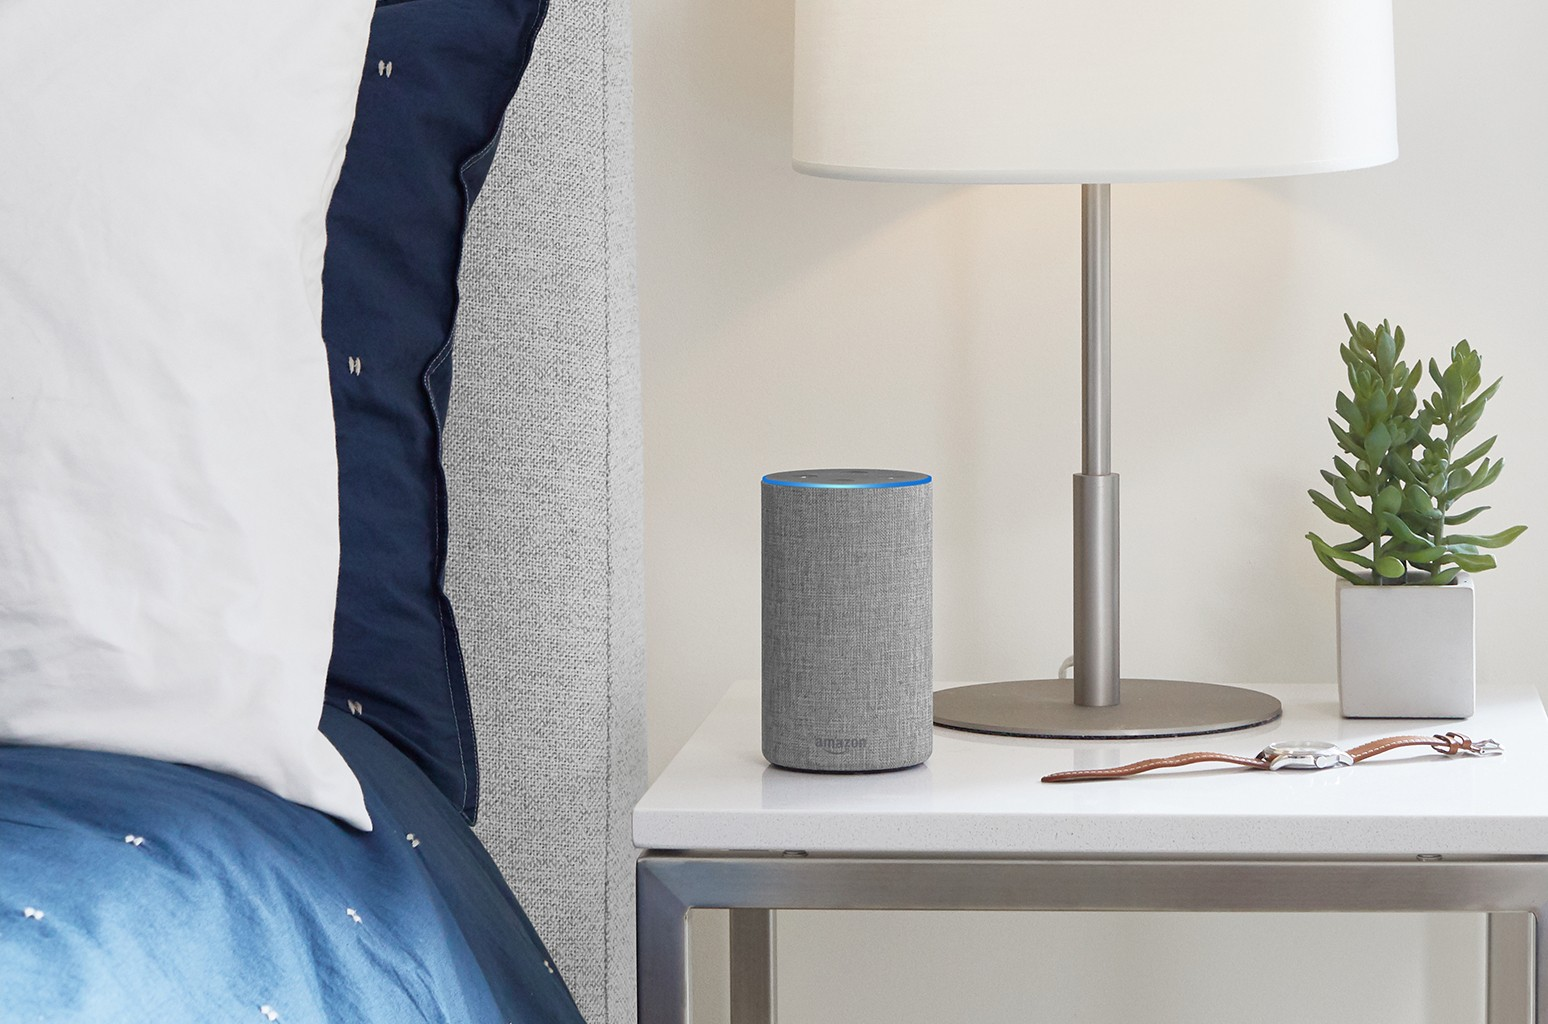 Amazon Echo in Light Gray